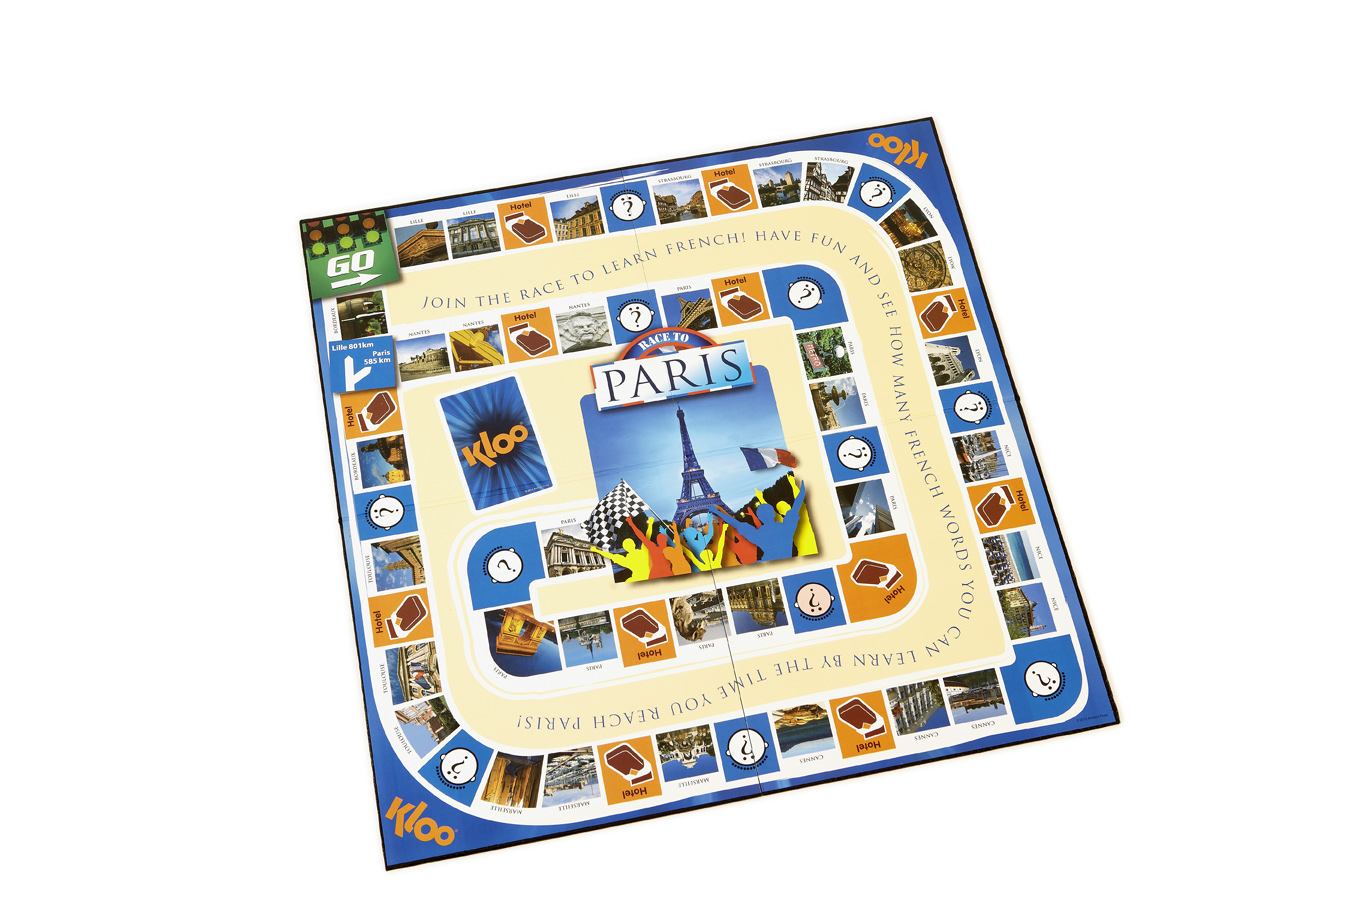 Andrew's family played Race to Paris in Paris